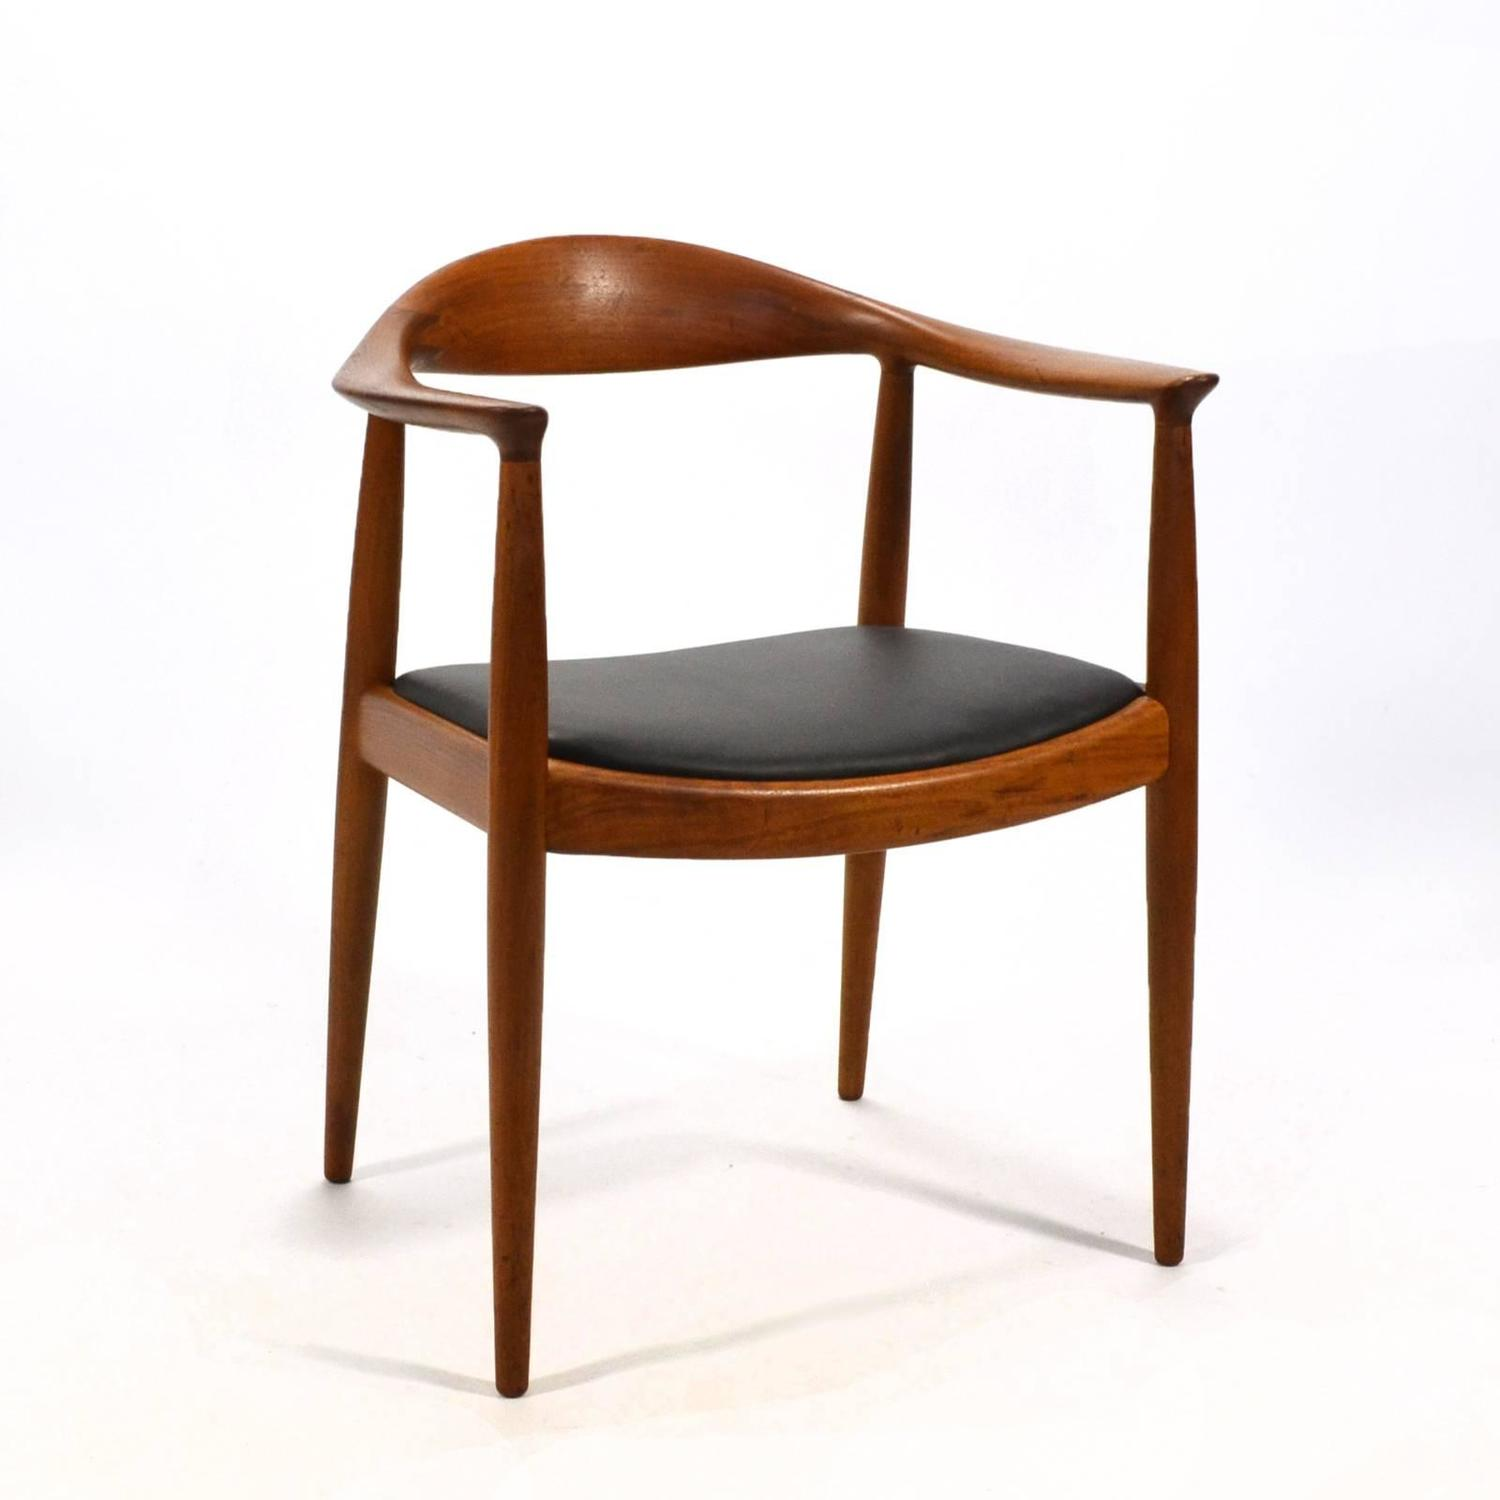 Hans Wegner Chair : hans wegner round chair the chair by johannes hansen for ~ Watch28wear.com Haus und Dekorationen